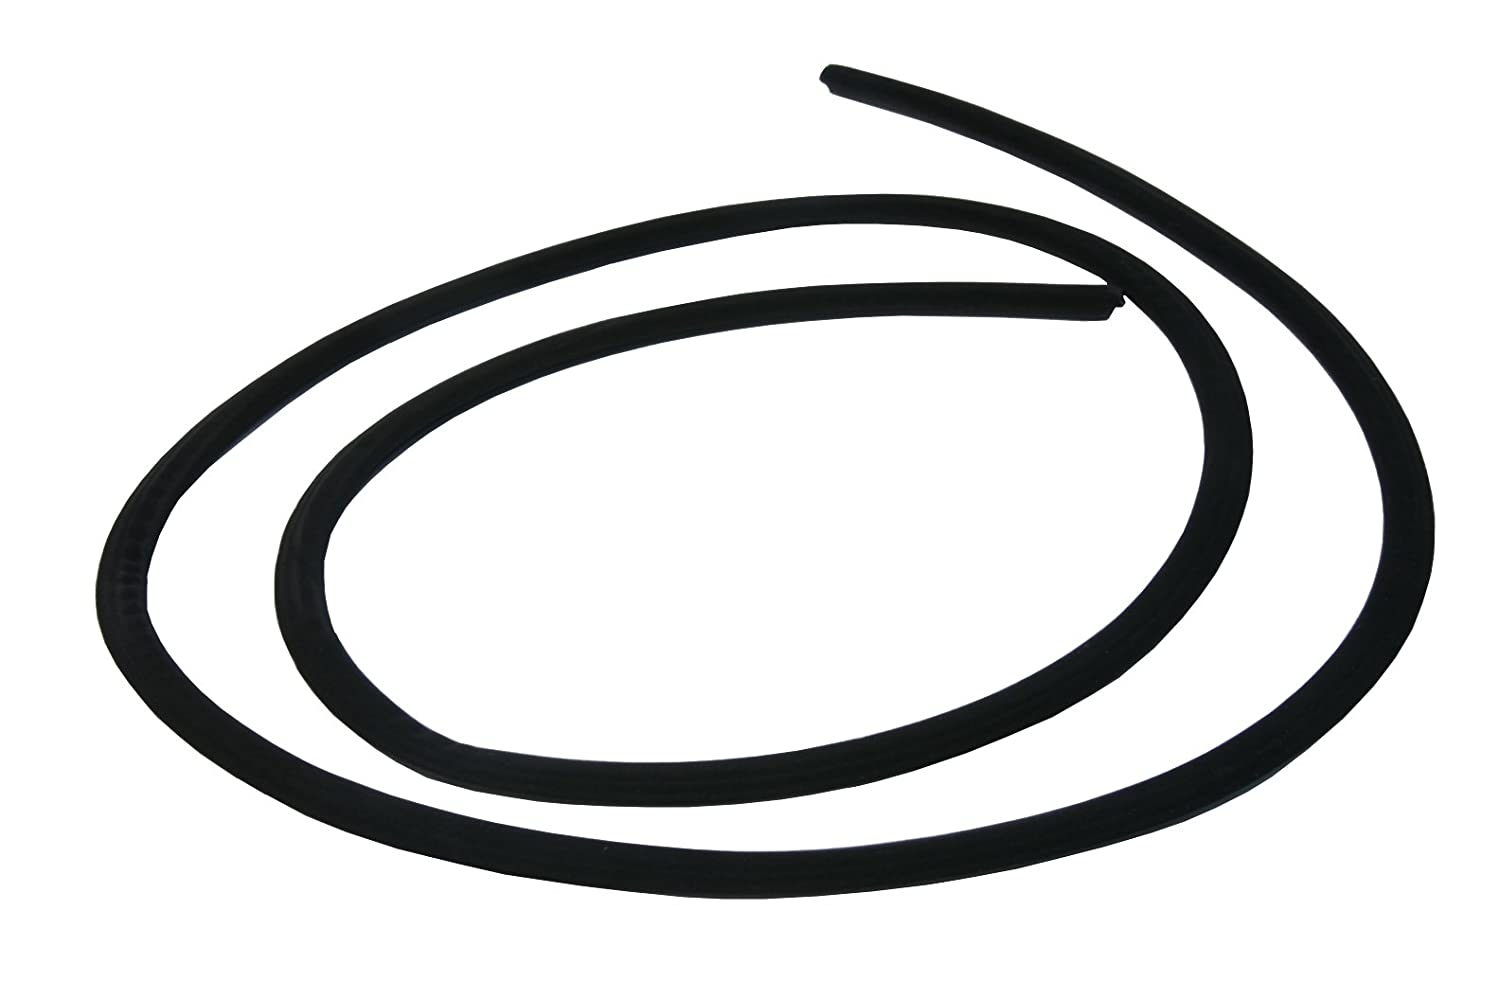 URO Parts 54 12 1 906 999 Sunroof Seal